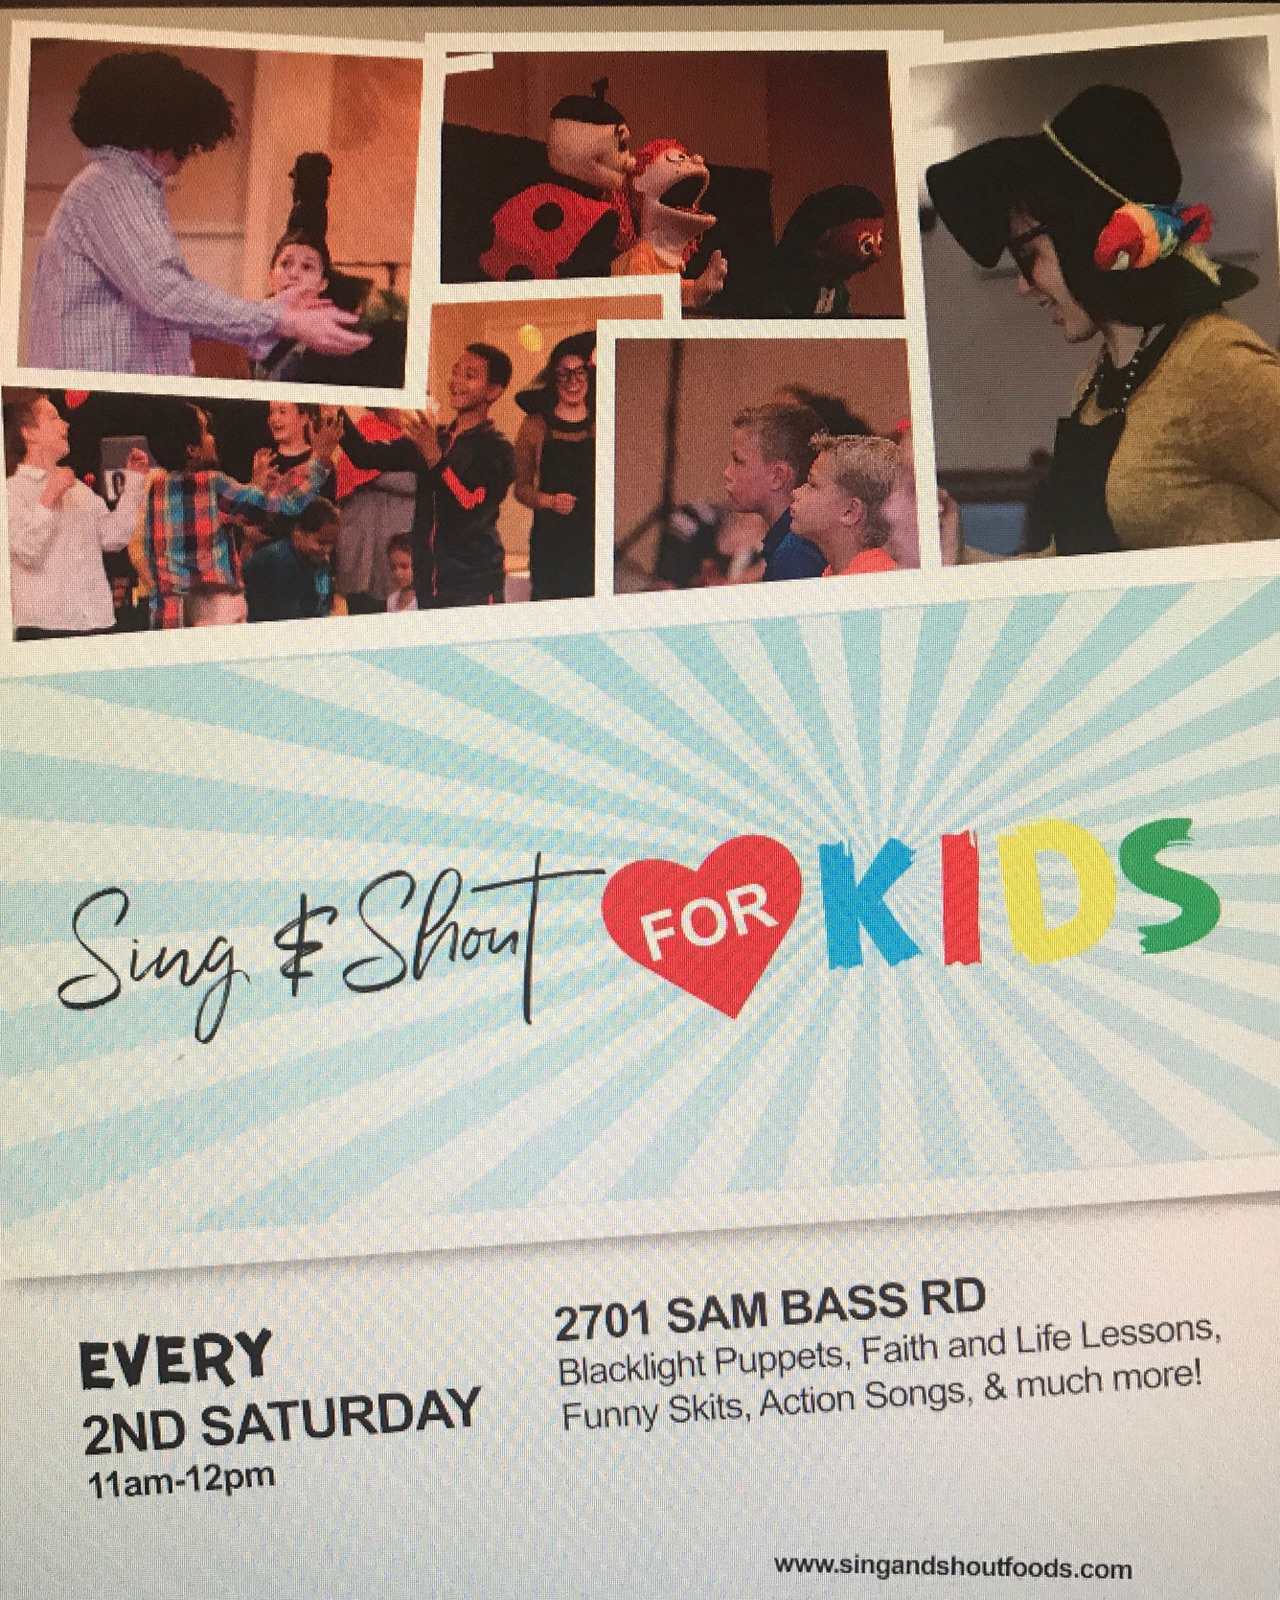 Sing & Shout for Kids